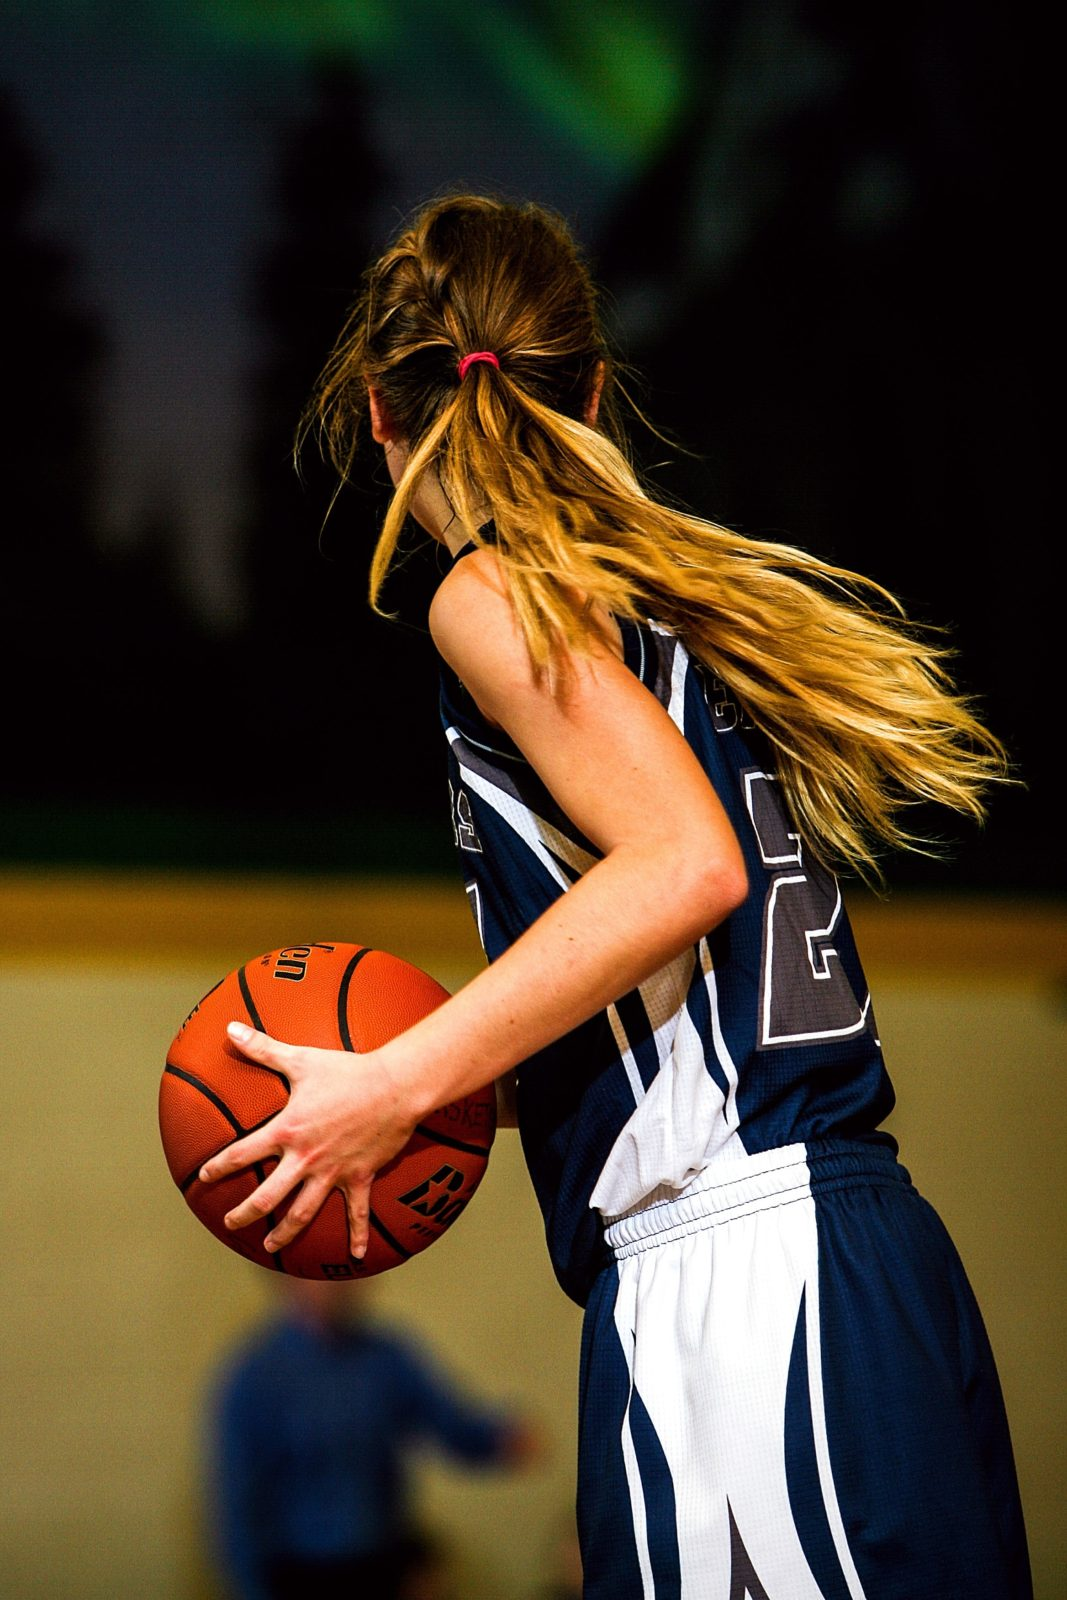 The NCAA eligibility rules could impact female sports hard.